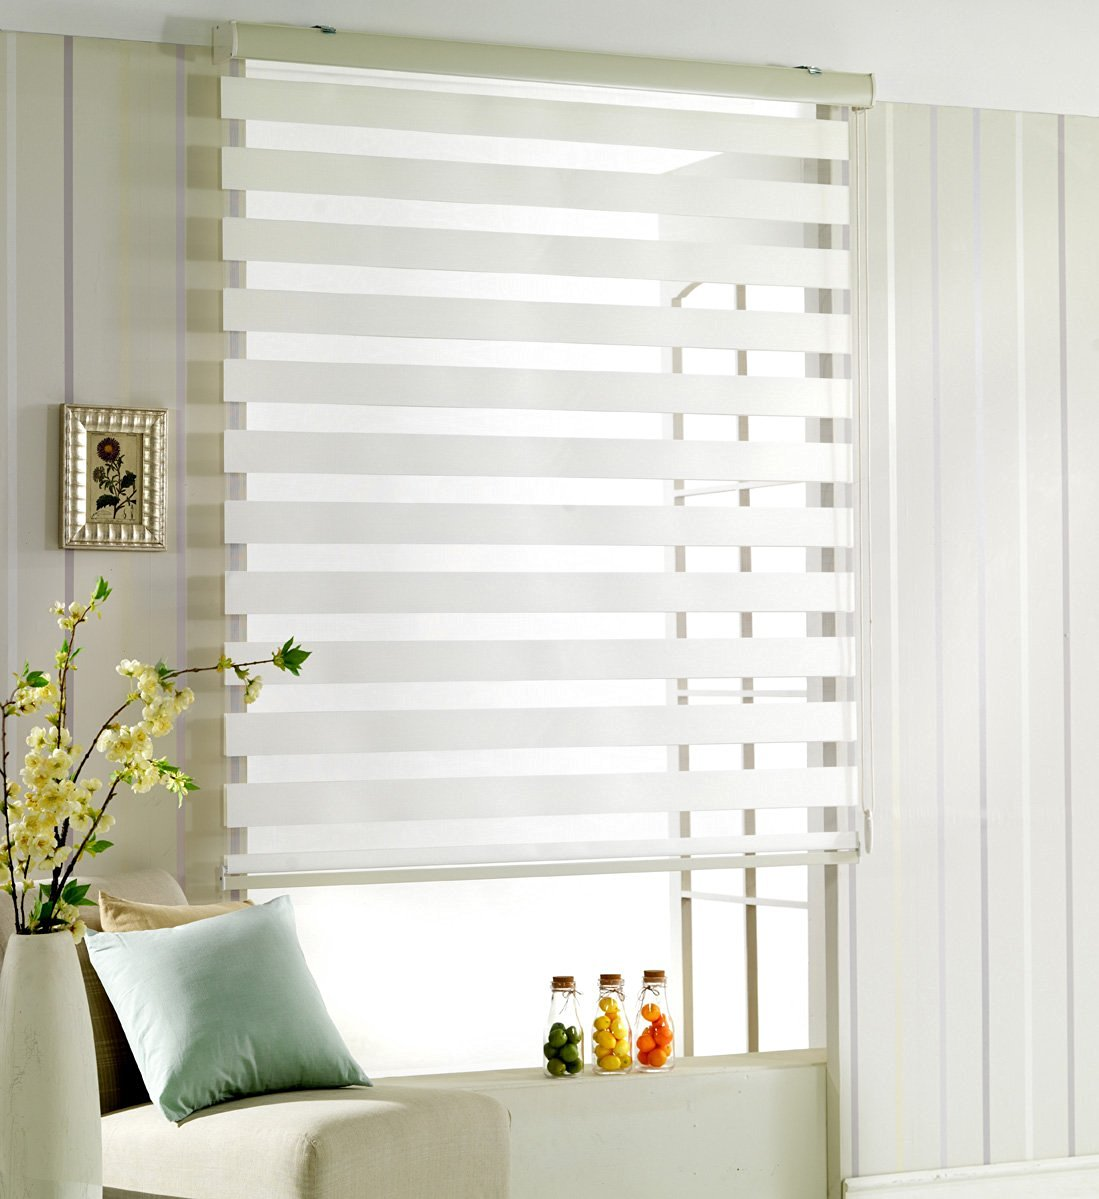 72 inch blinds shade custom cut to size winsharp woodlook 72 horizontal window shade blind zebra dual cheap 72 inch wide blinds find blinds deals on line at